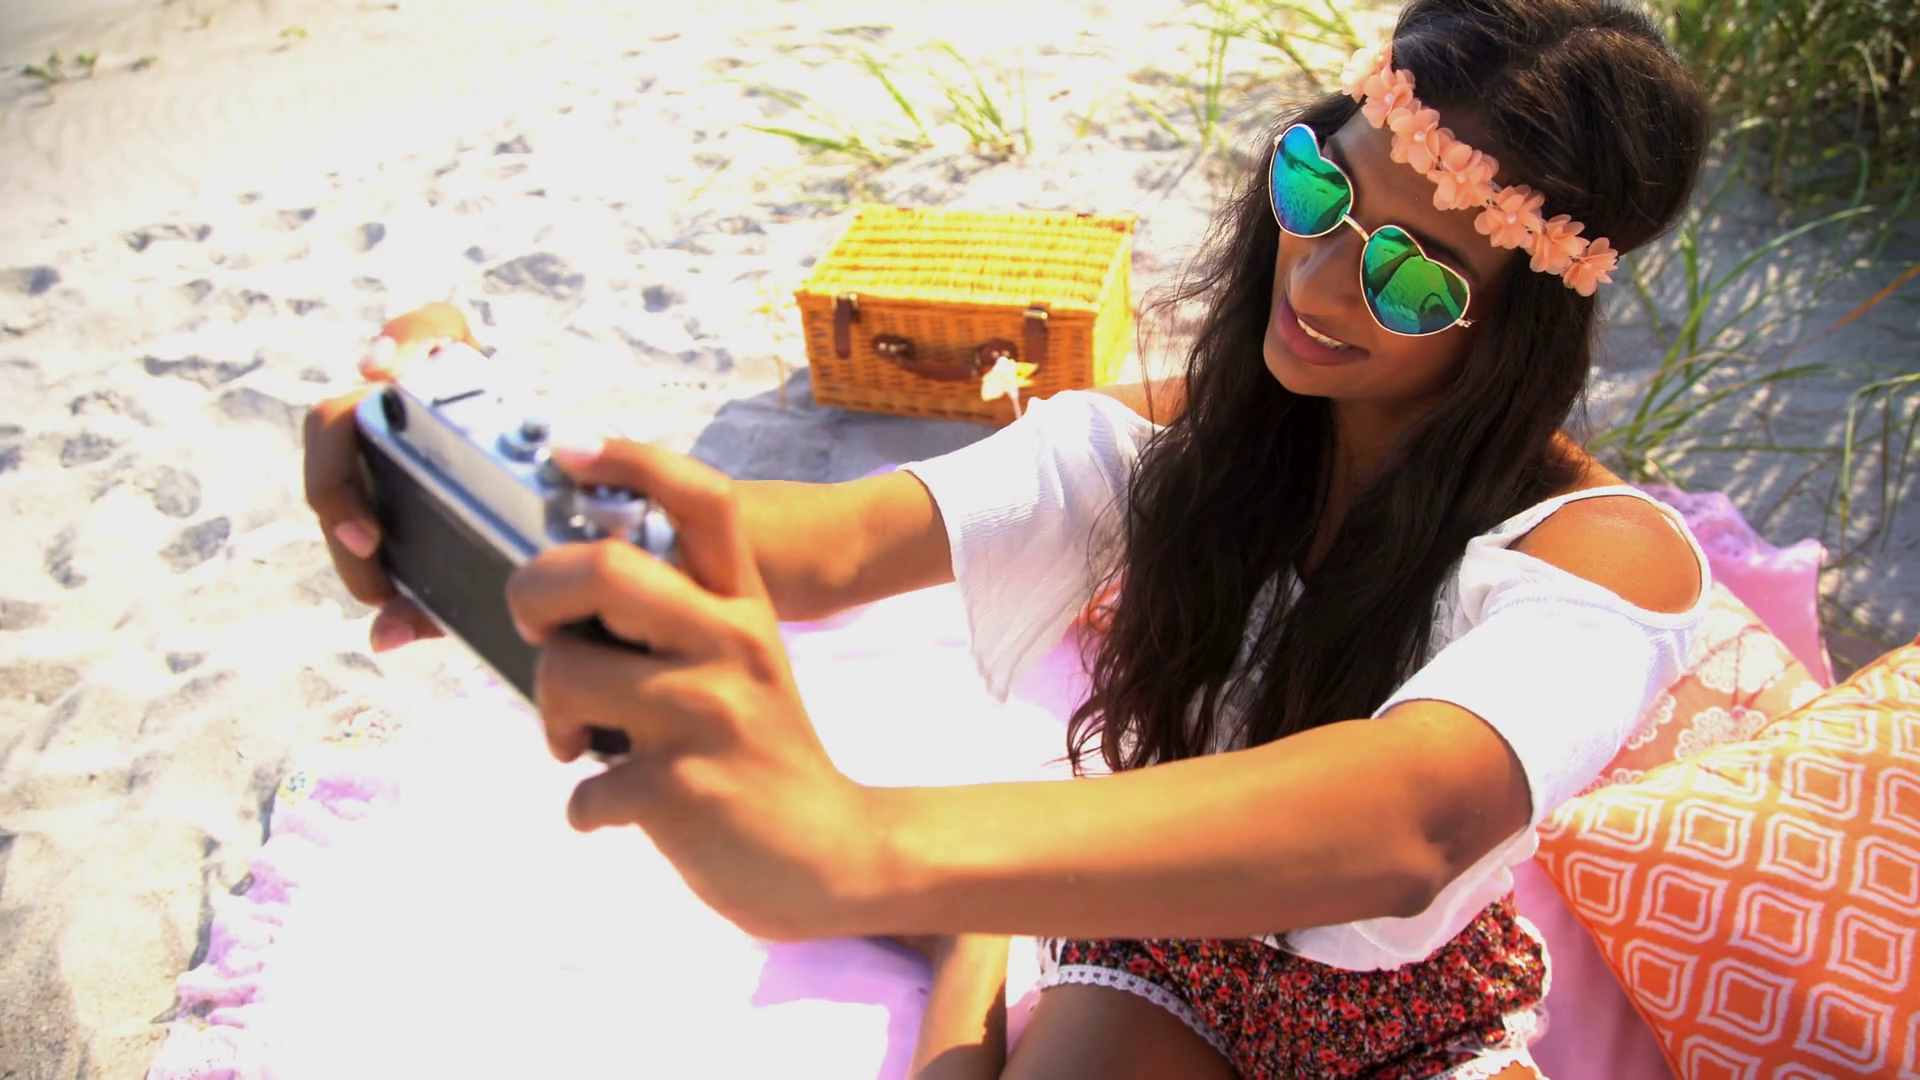 young-smiling-indian-american-woman-in-bohemian-style-sun-dress-taking-selfie-at-picnic-on-her-beach-holiday_rleyvwiqe_thumbnail-full01